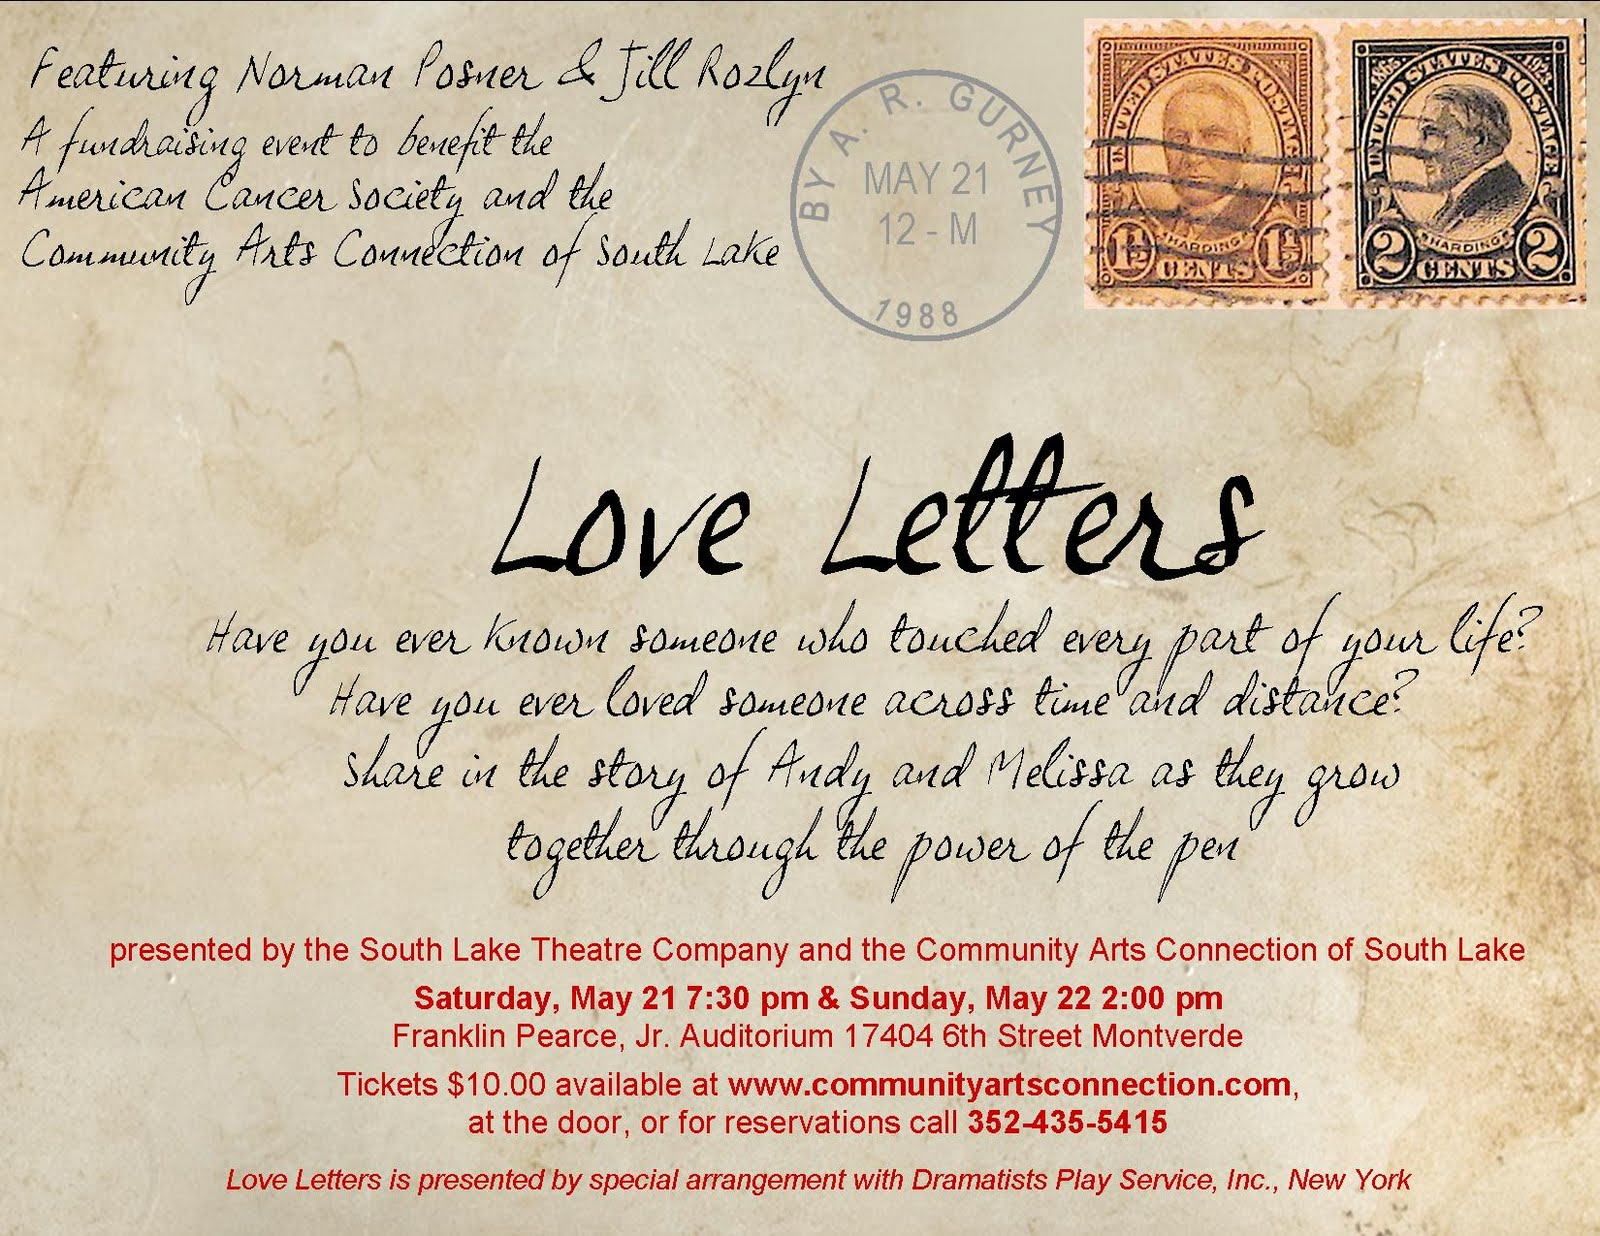 come check out cacs newest production ar gurneys critically acclaimed show love letters this unique touching play is about a man and womans life